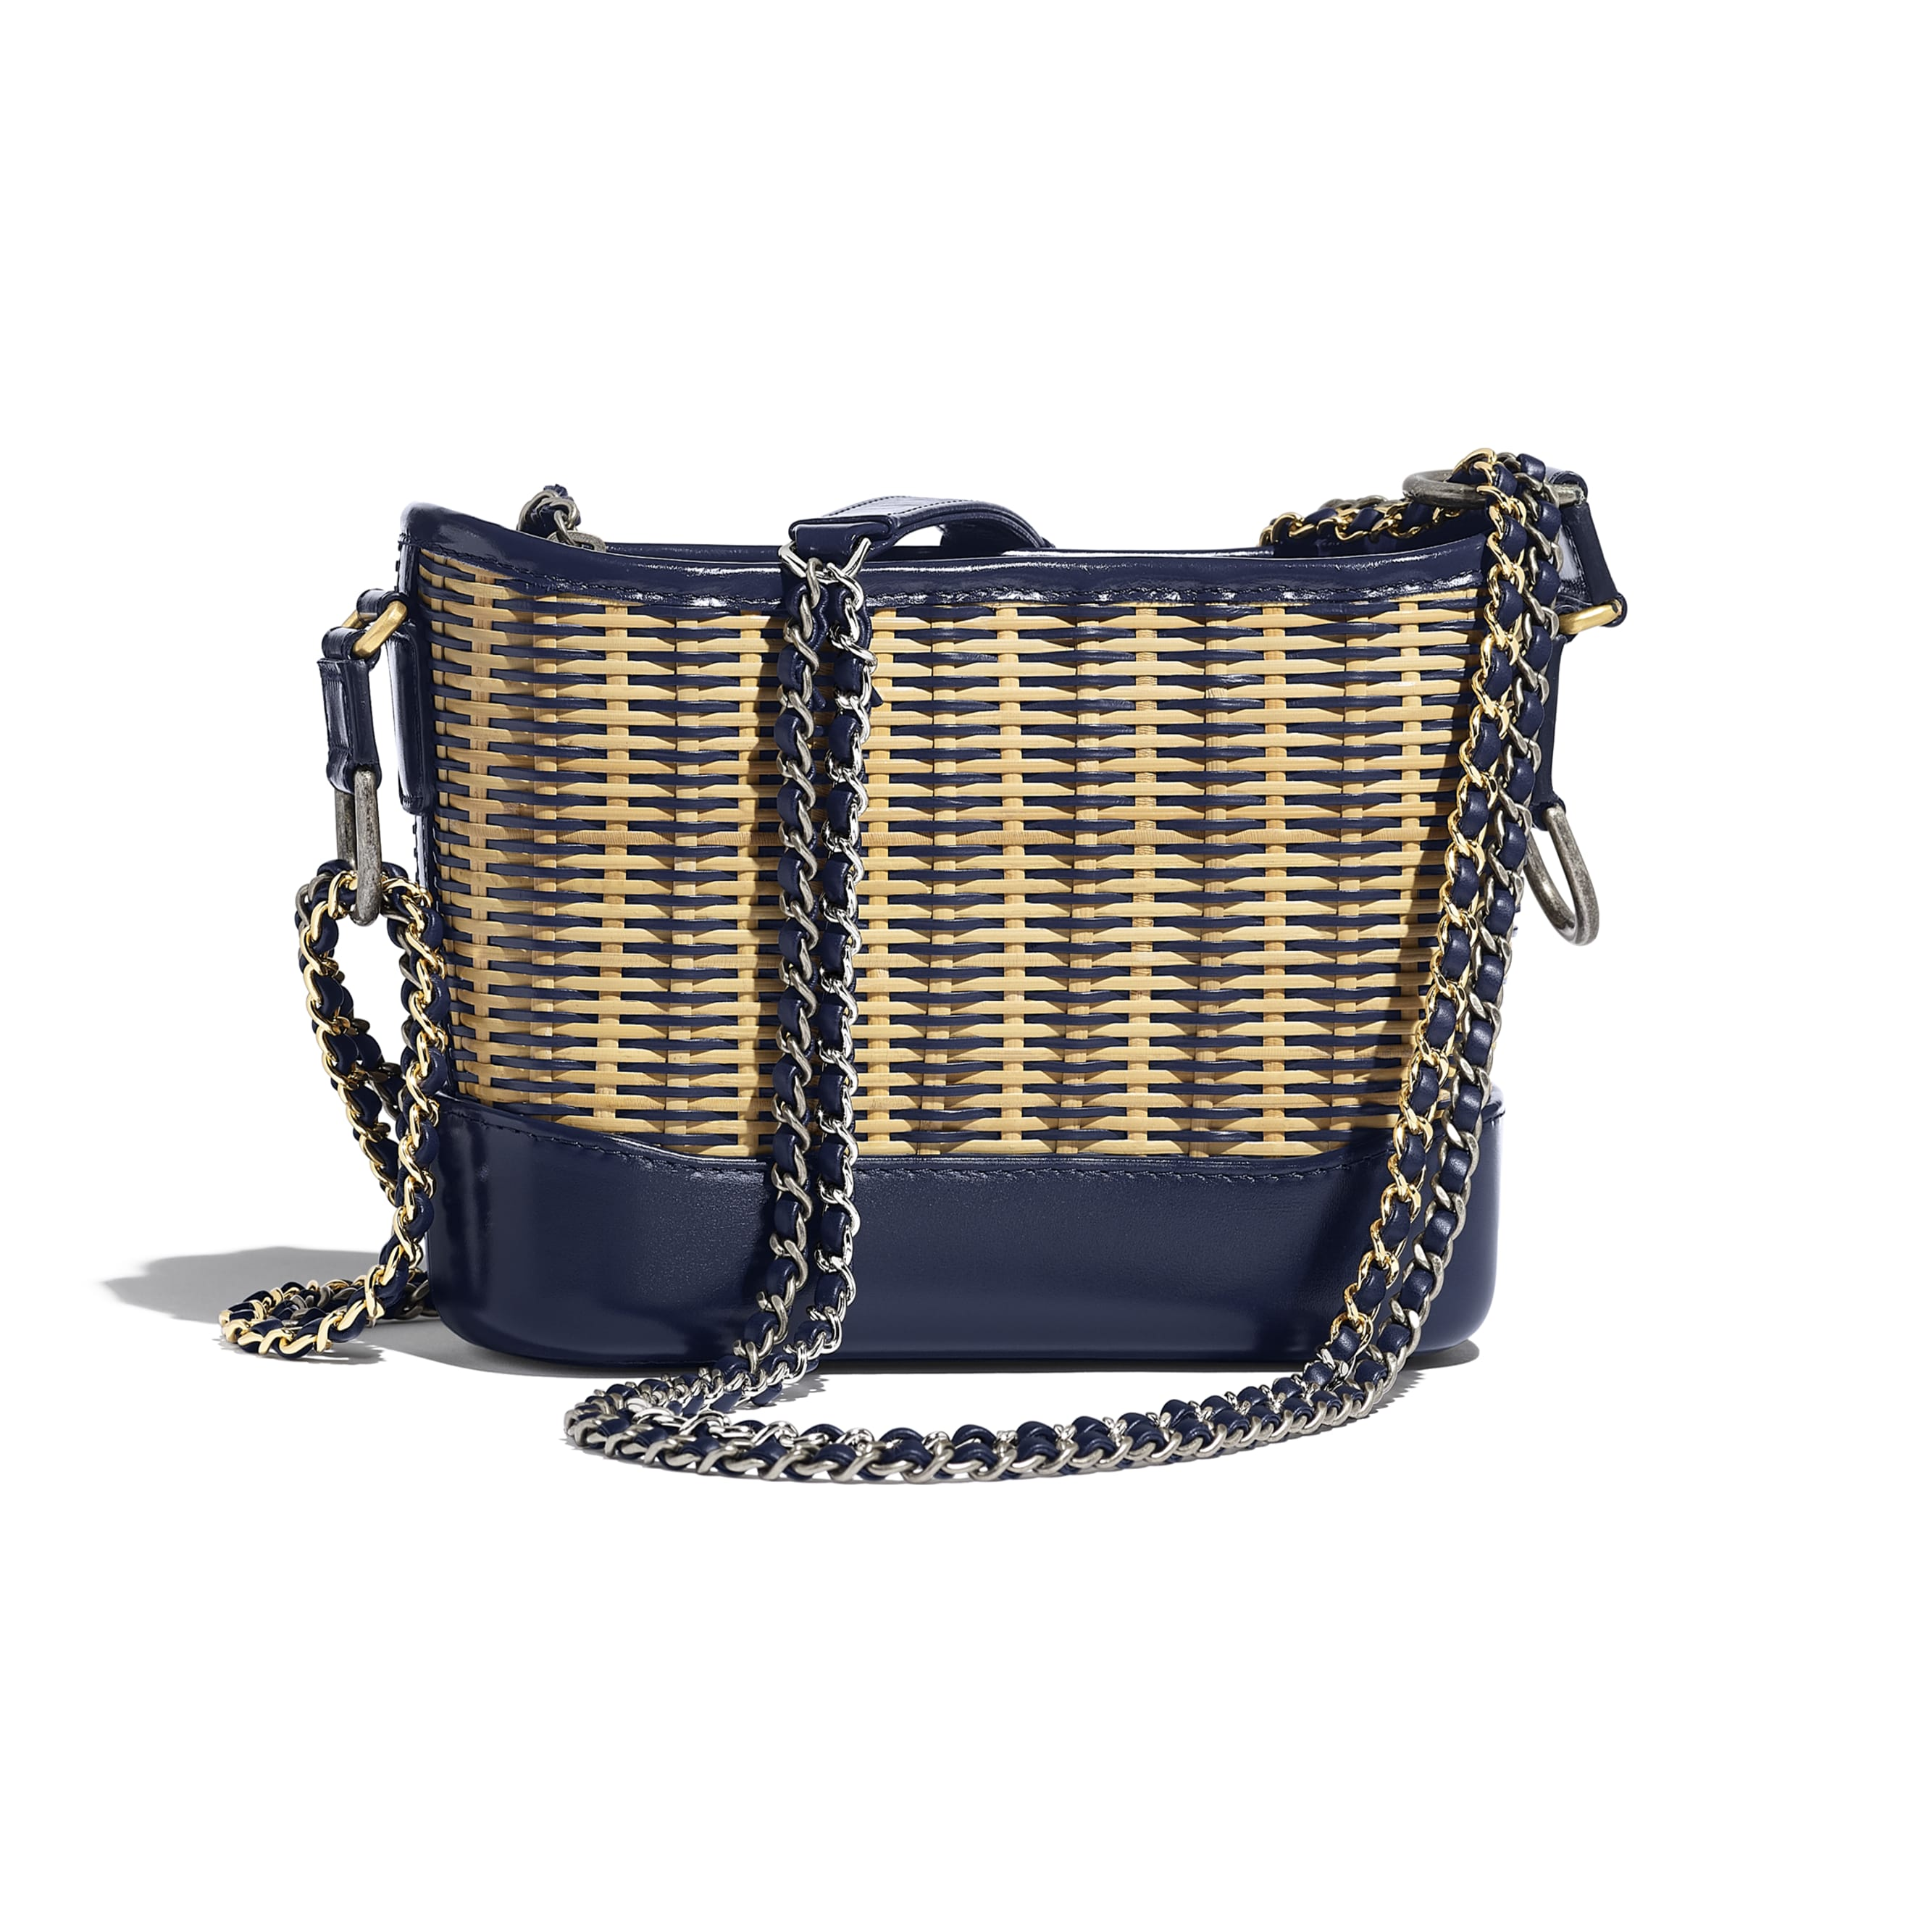 CHANEL'S GABRIELLE Small Hobo Bag - Beige & Navy Blue - Rattan, Calfskin, Gold-Tone & Silver-Tone Metal - CHANEL - Alternative view - see standard sized version